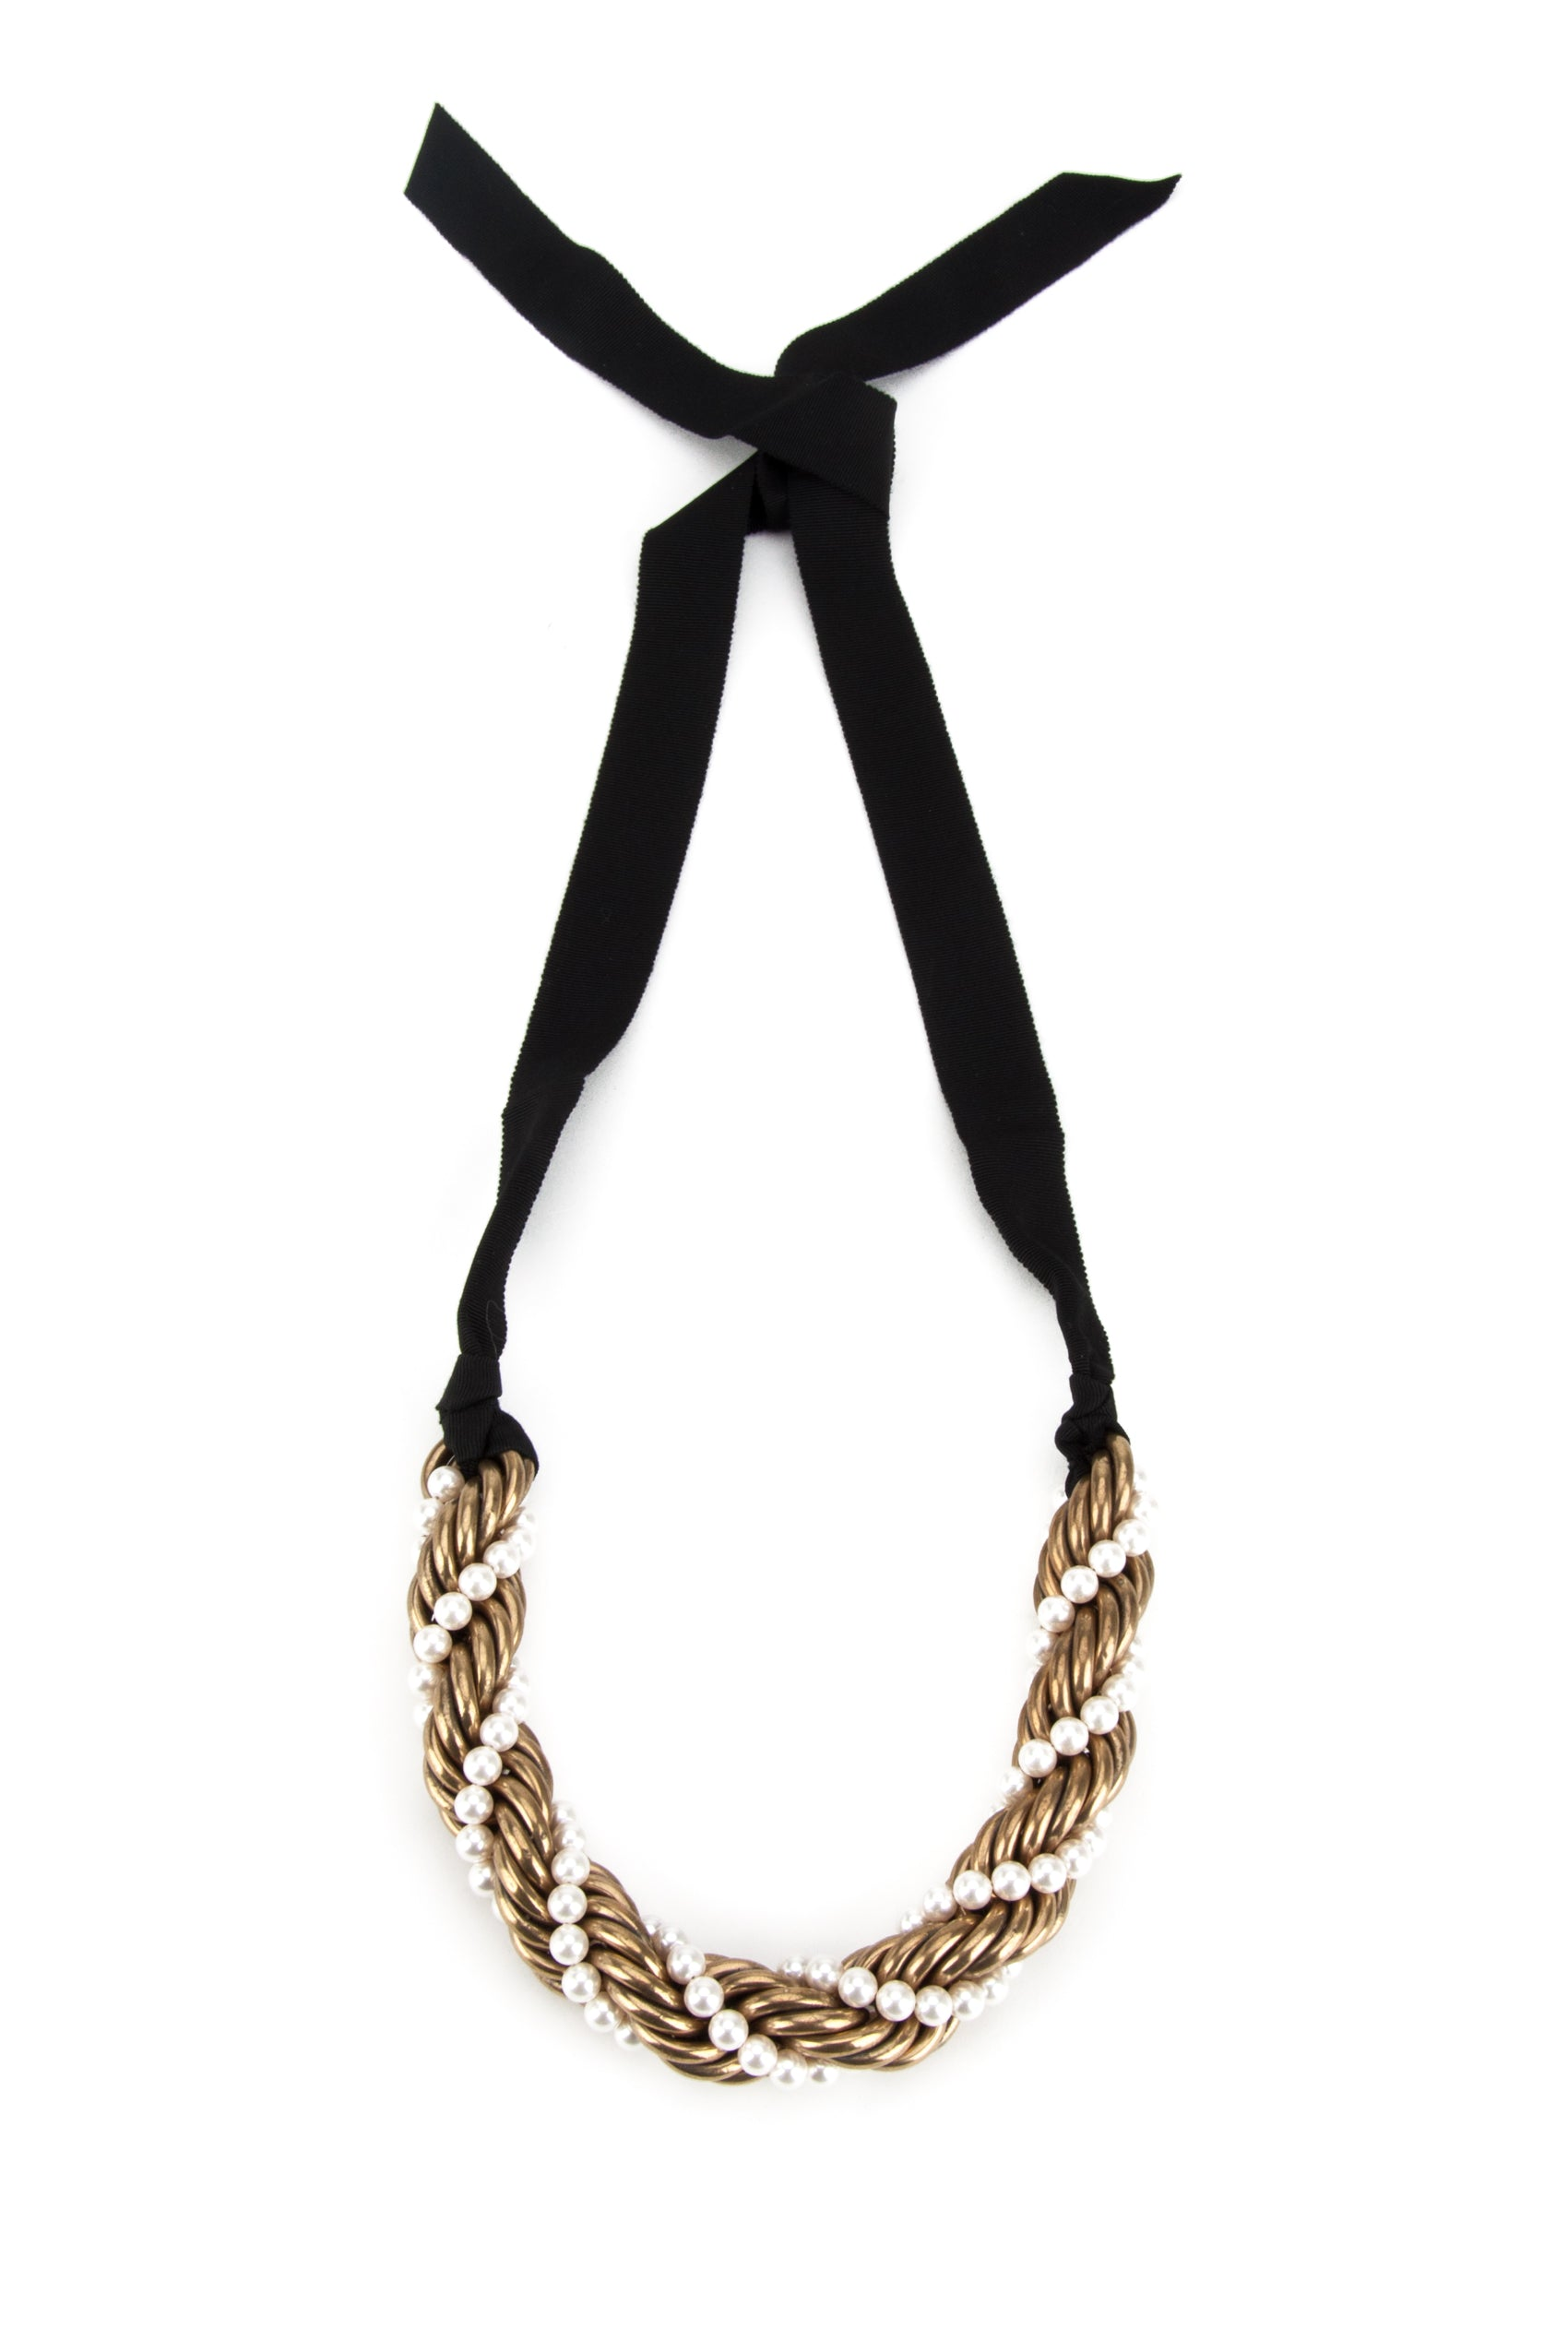 LANVIN TWISTED CONTRAST NECKLACE